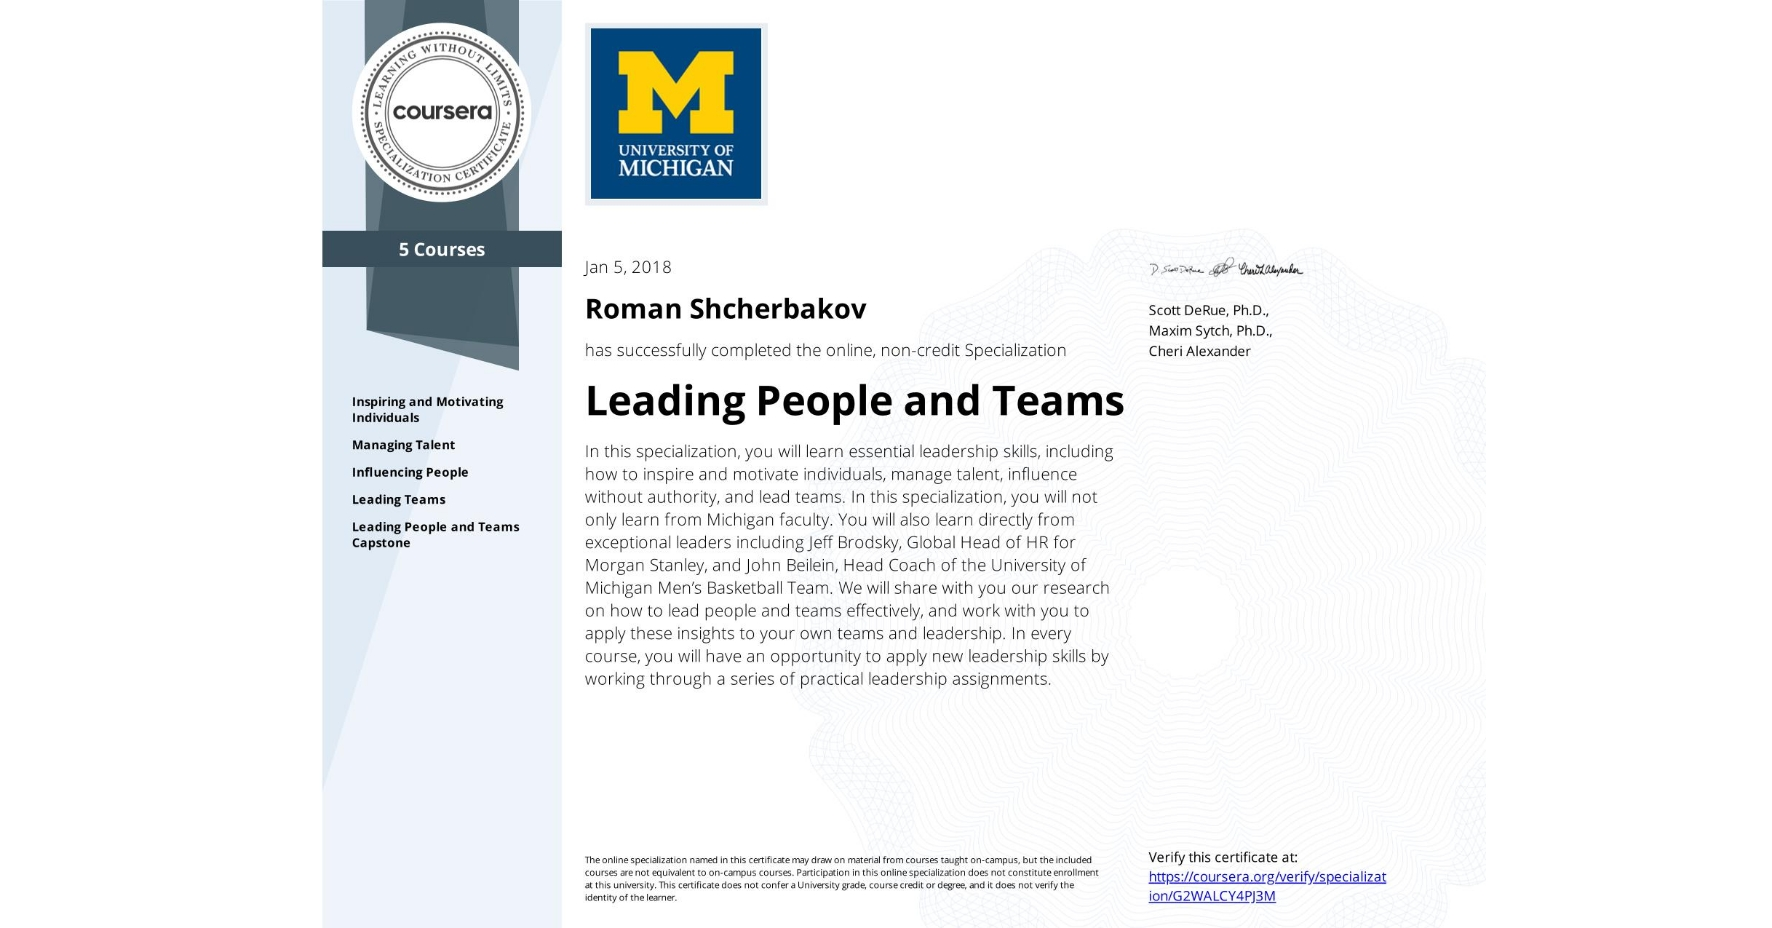 View certificate for Roman Shcherbakov, Leading People and Teams, offered through Coursera. In this specialization, you will learn essential leadership skills, including how to inspire and motivate individuals, manage talent, influence without authority, and lead teams. In this specialization, you will not only learn from Michigan faculty. You will also learn directly from exceptional leaders including Jeff Brodsky, Global Head of HR for Morgan Stanley, and John Beilein, Head Coach of the University of Michigan Men's Basketball Team. We will share with you our research on how to lead people and teams effectively, and work with you to apply these insights to your own teams and leadership. In every course, you will have an opportunity to apply new leadership skills by working through a series of practical leadership assignments.